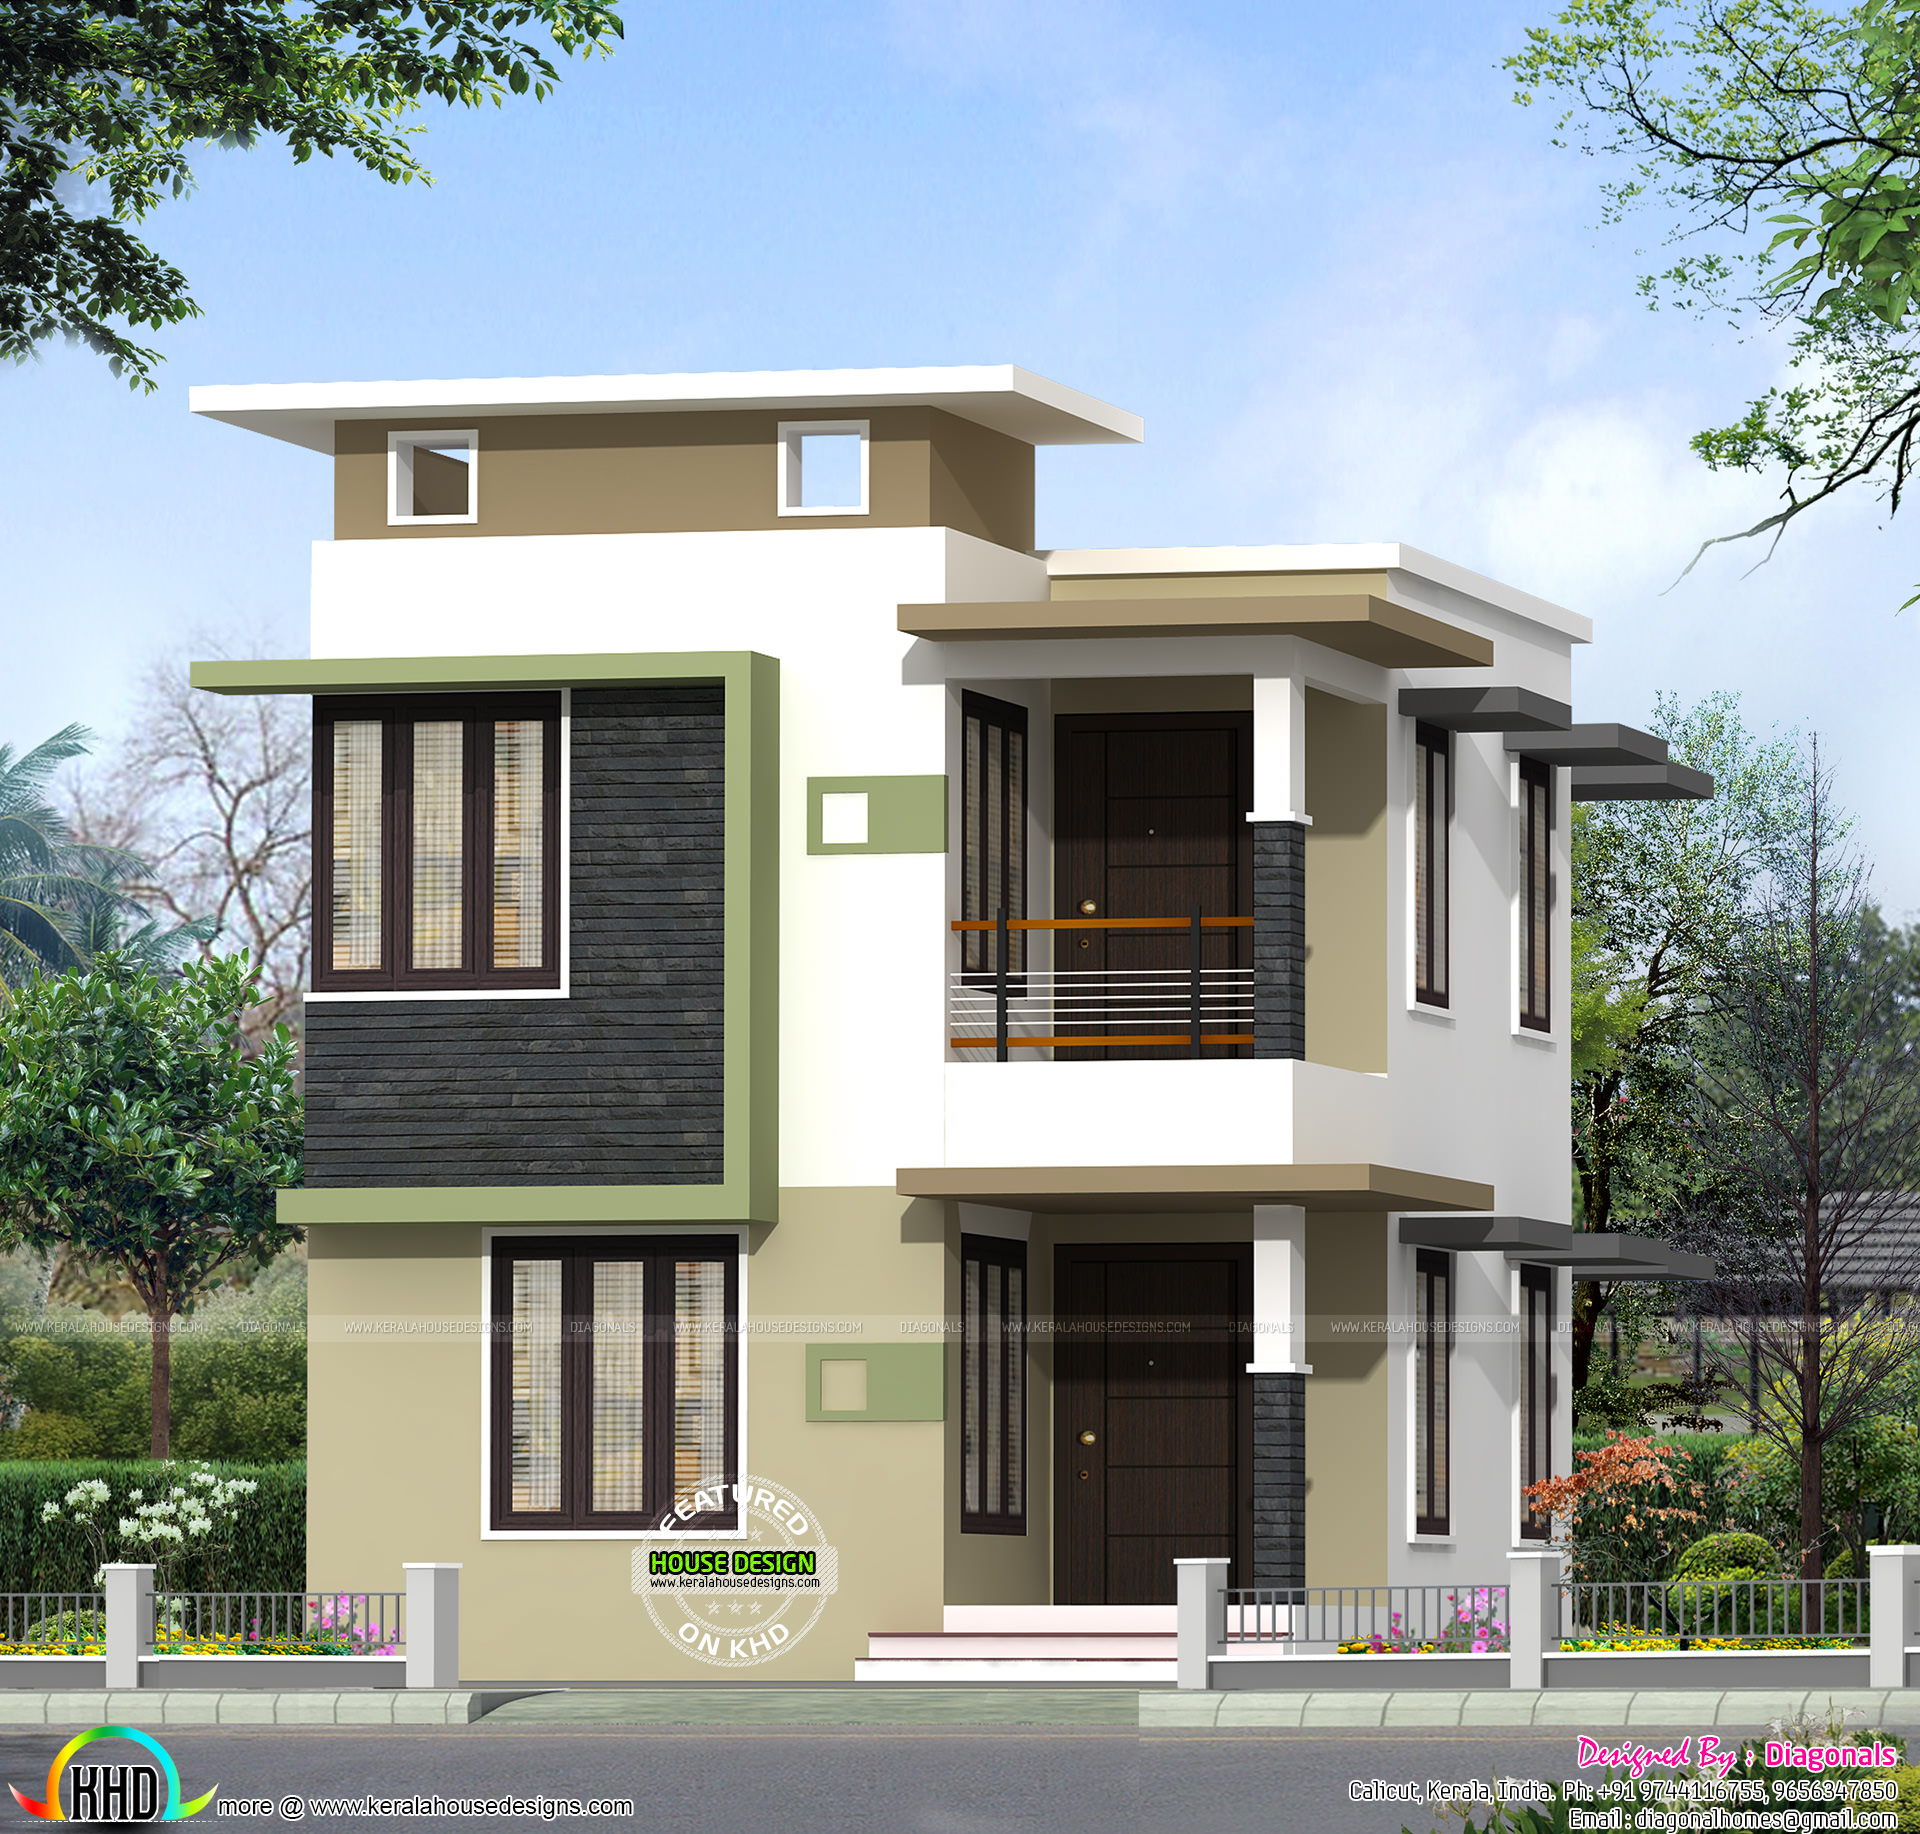 Best Architecture Houses In India home design photos house design indian house design new home